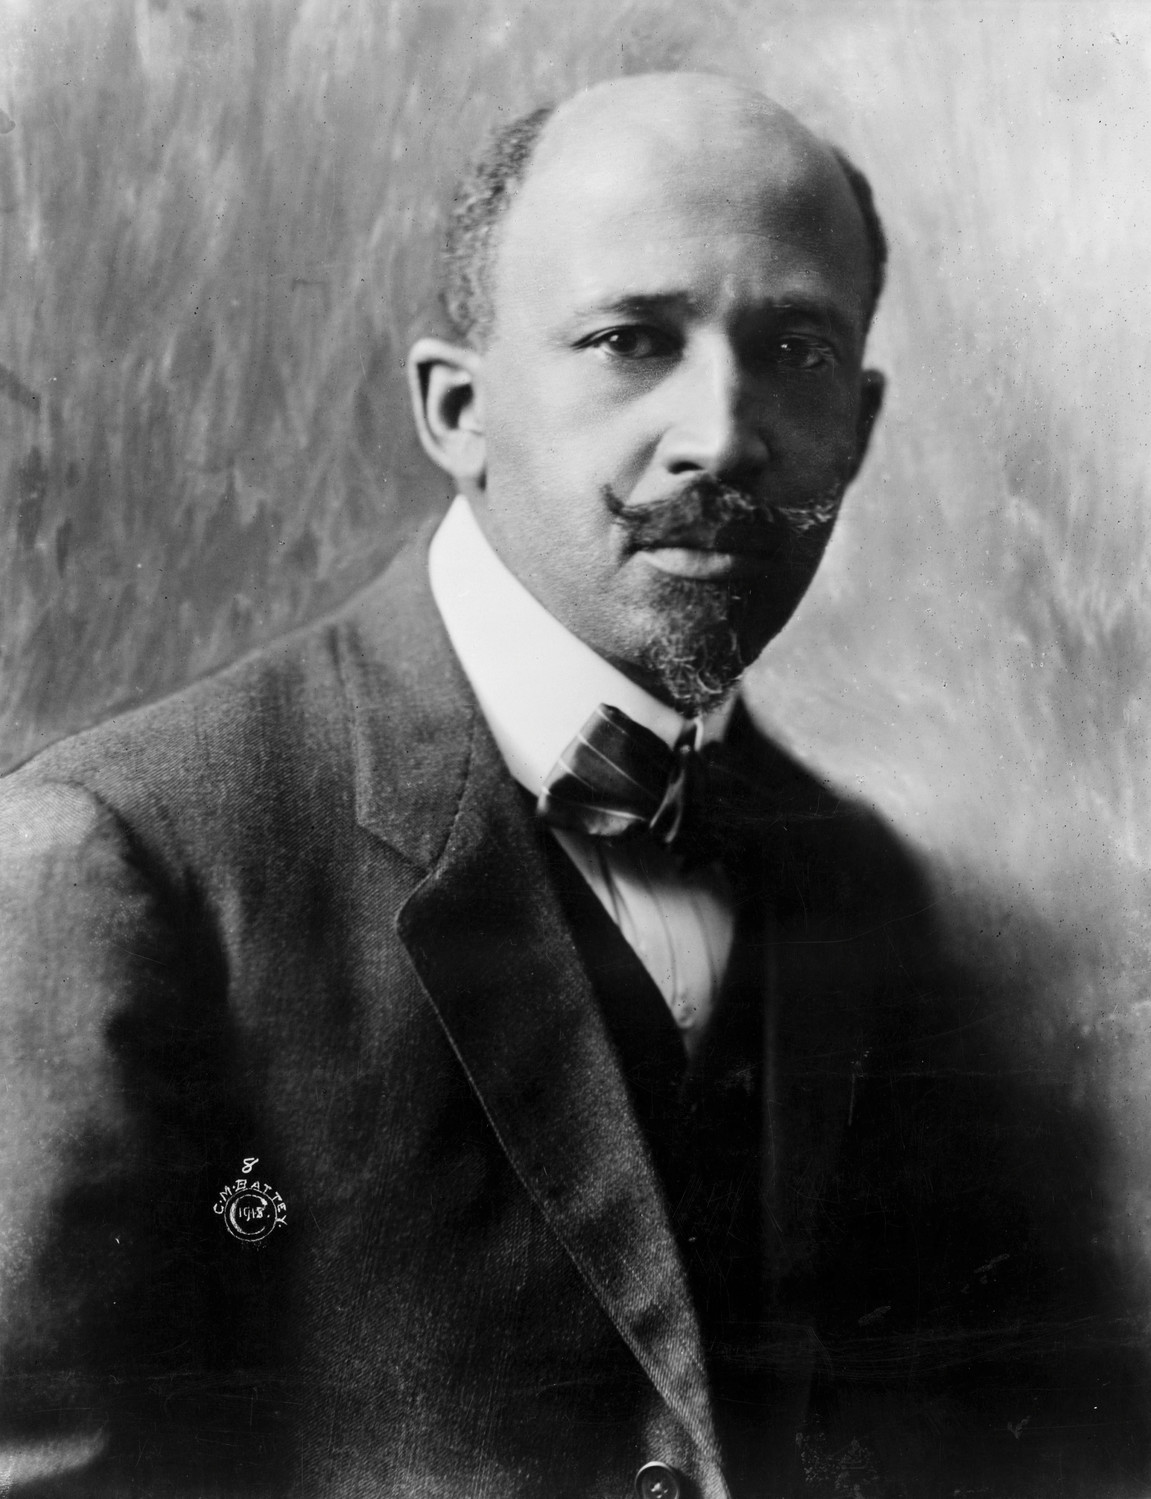 W.E.B. Du Bois was an iconic figure in the American civil rights struggle and a founder of the NAACP.